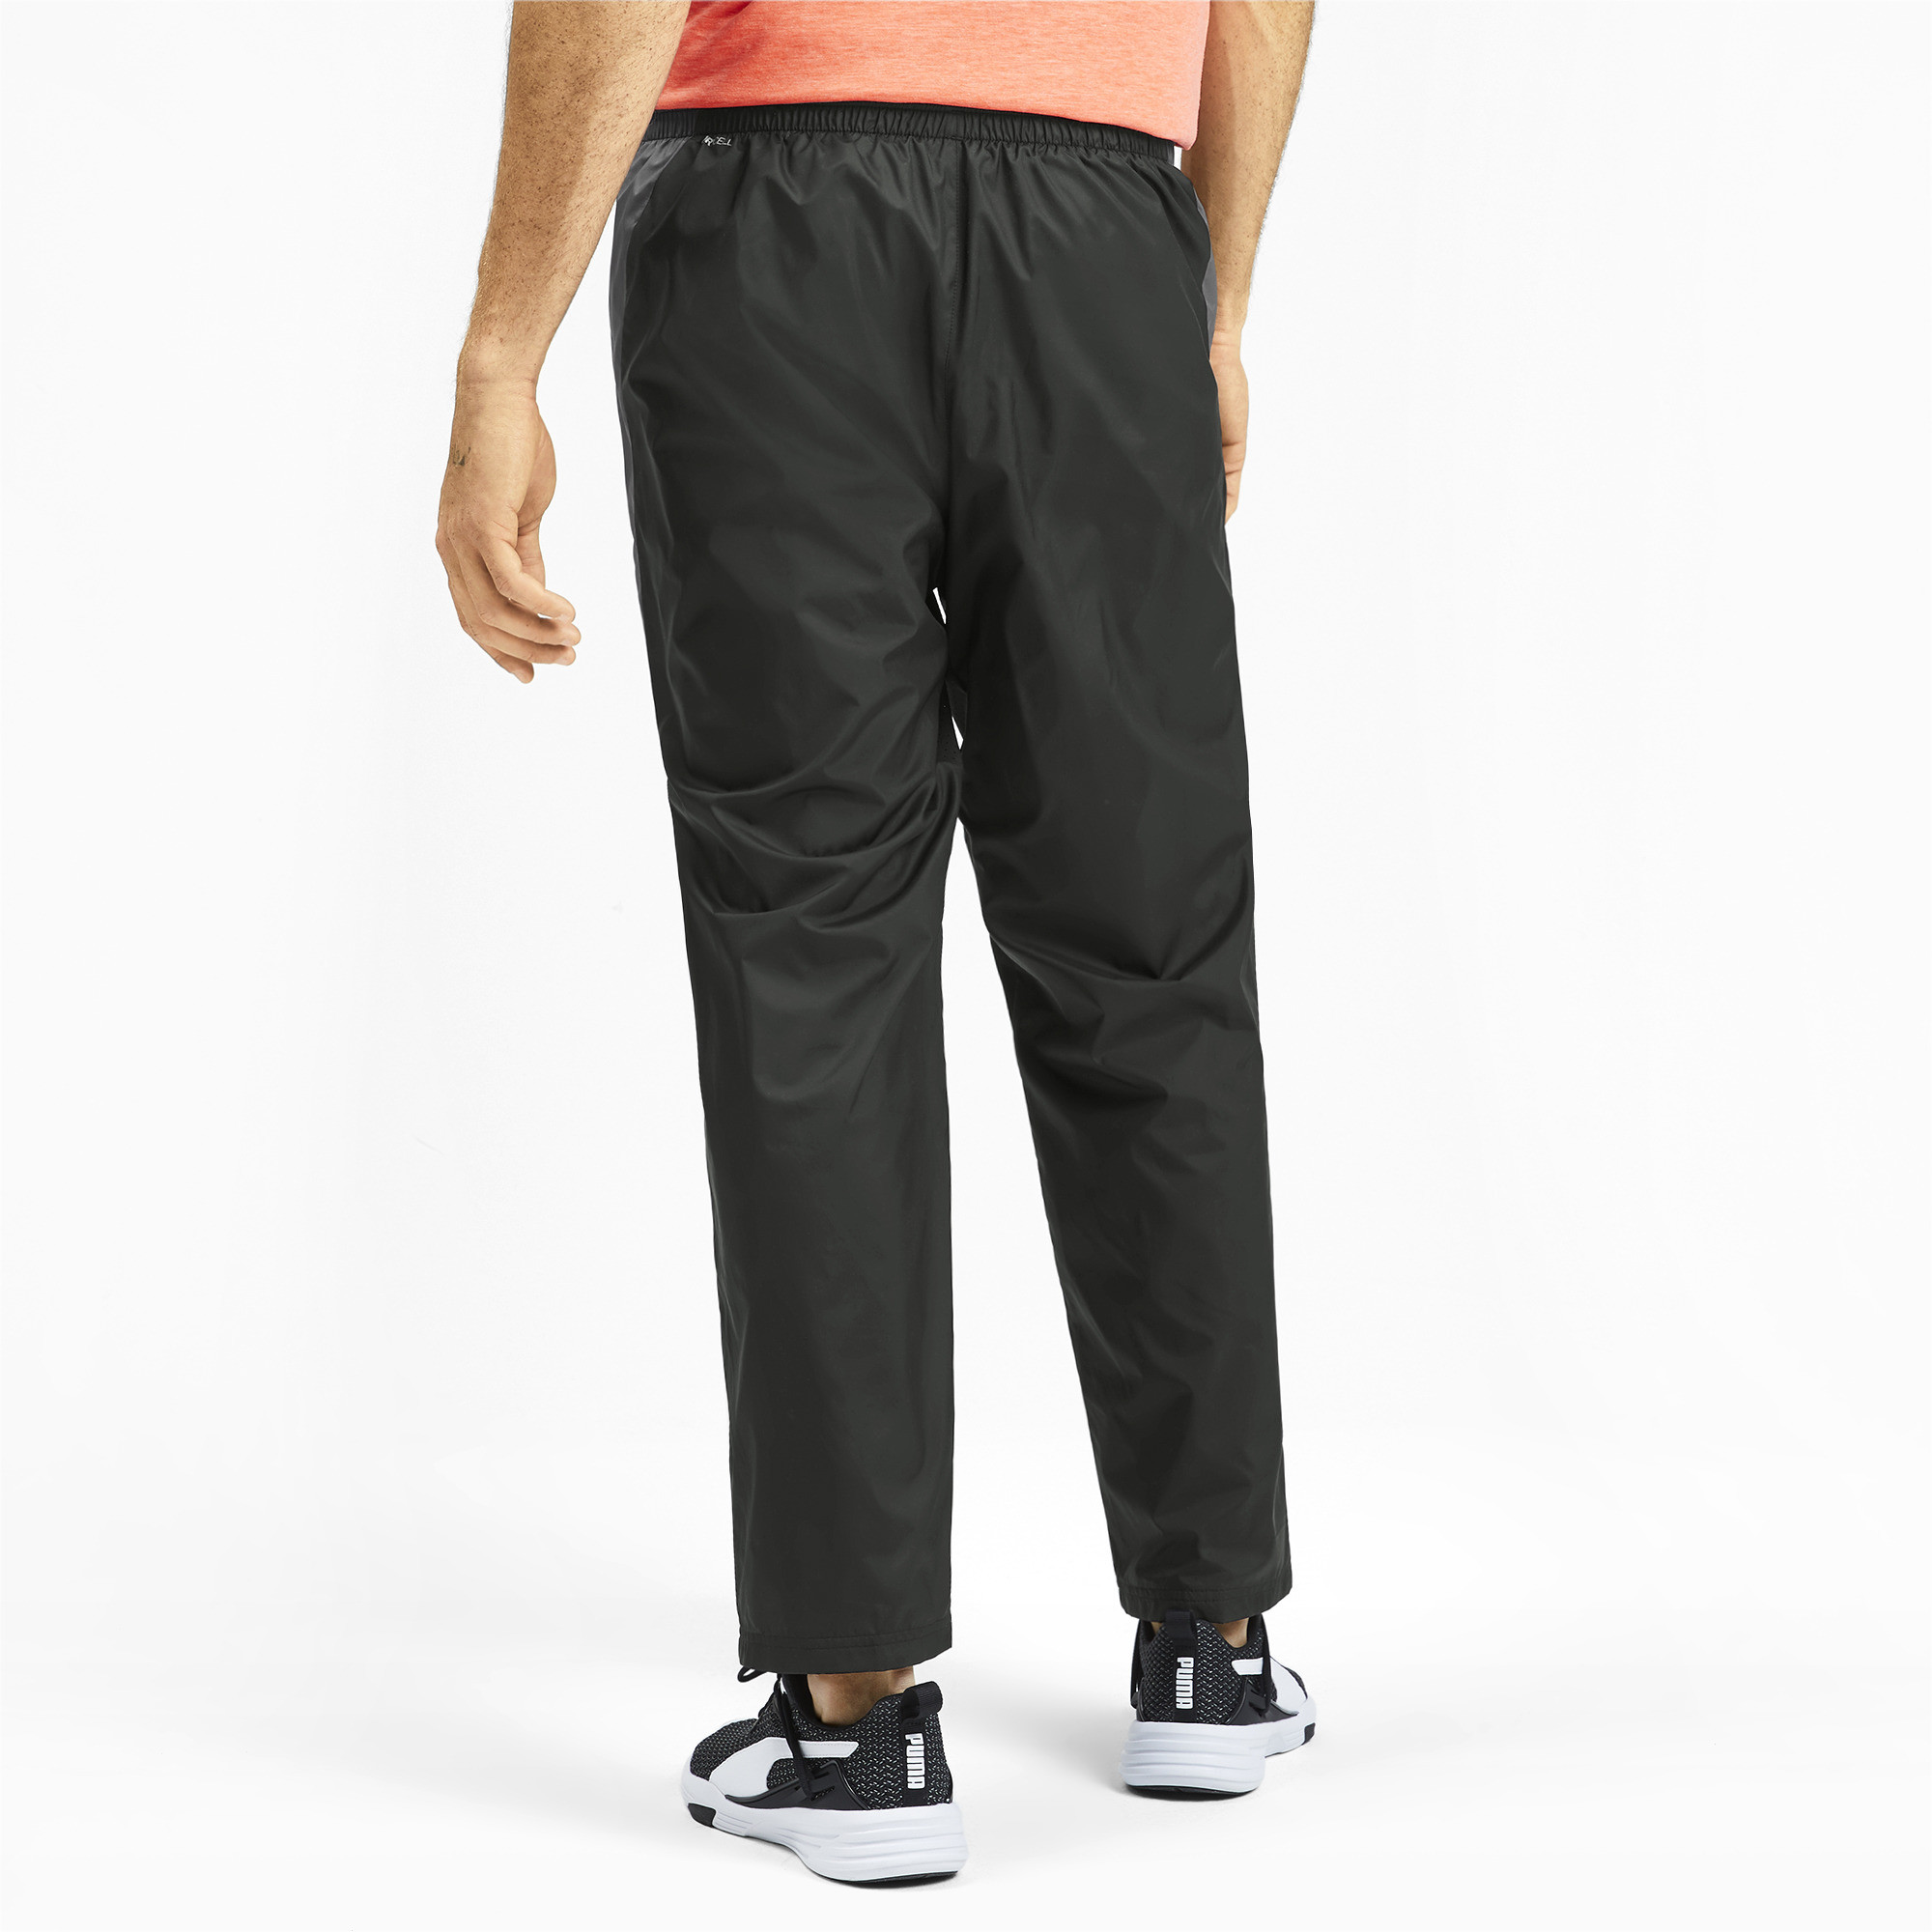 PUMA-Reactive-Men-039-s-Woven-Pants-Men-Woven-Pants-Training miniatura 5